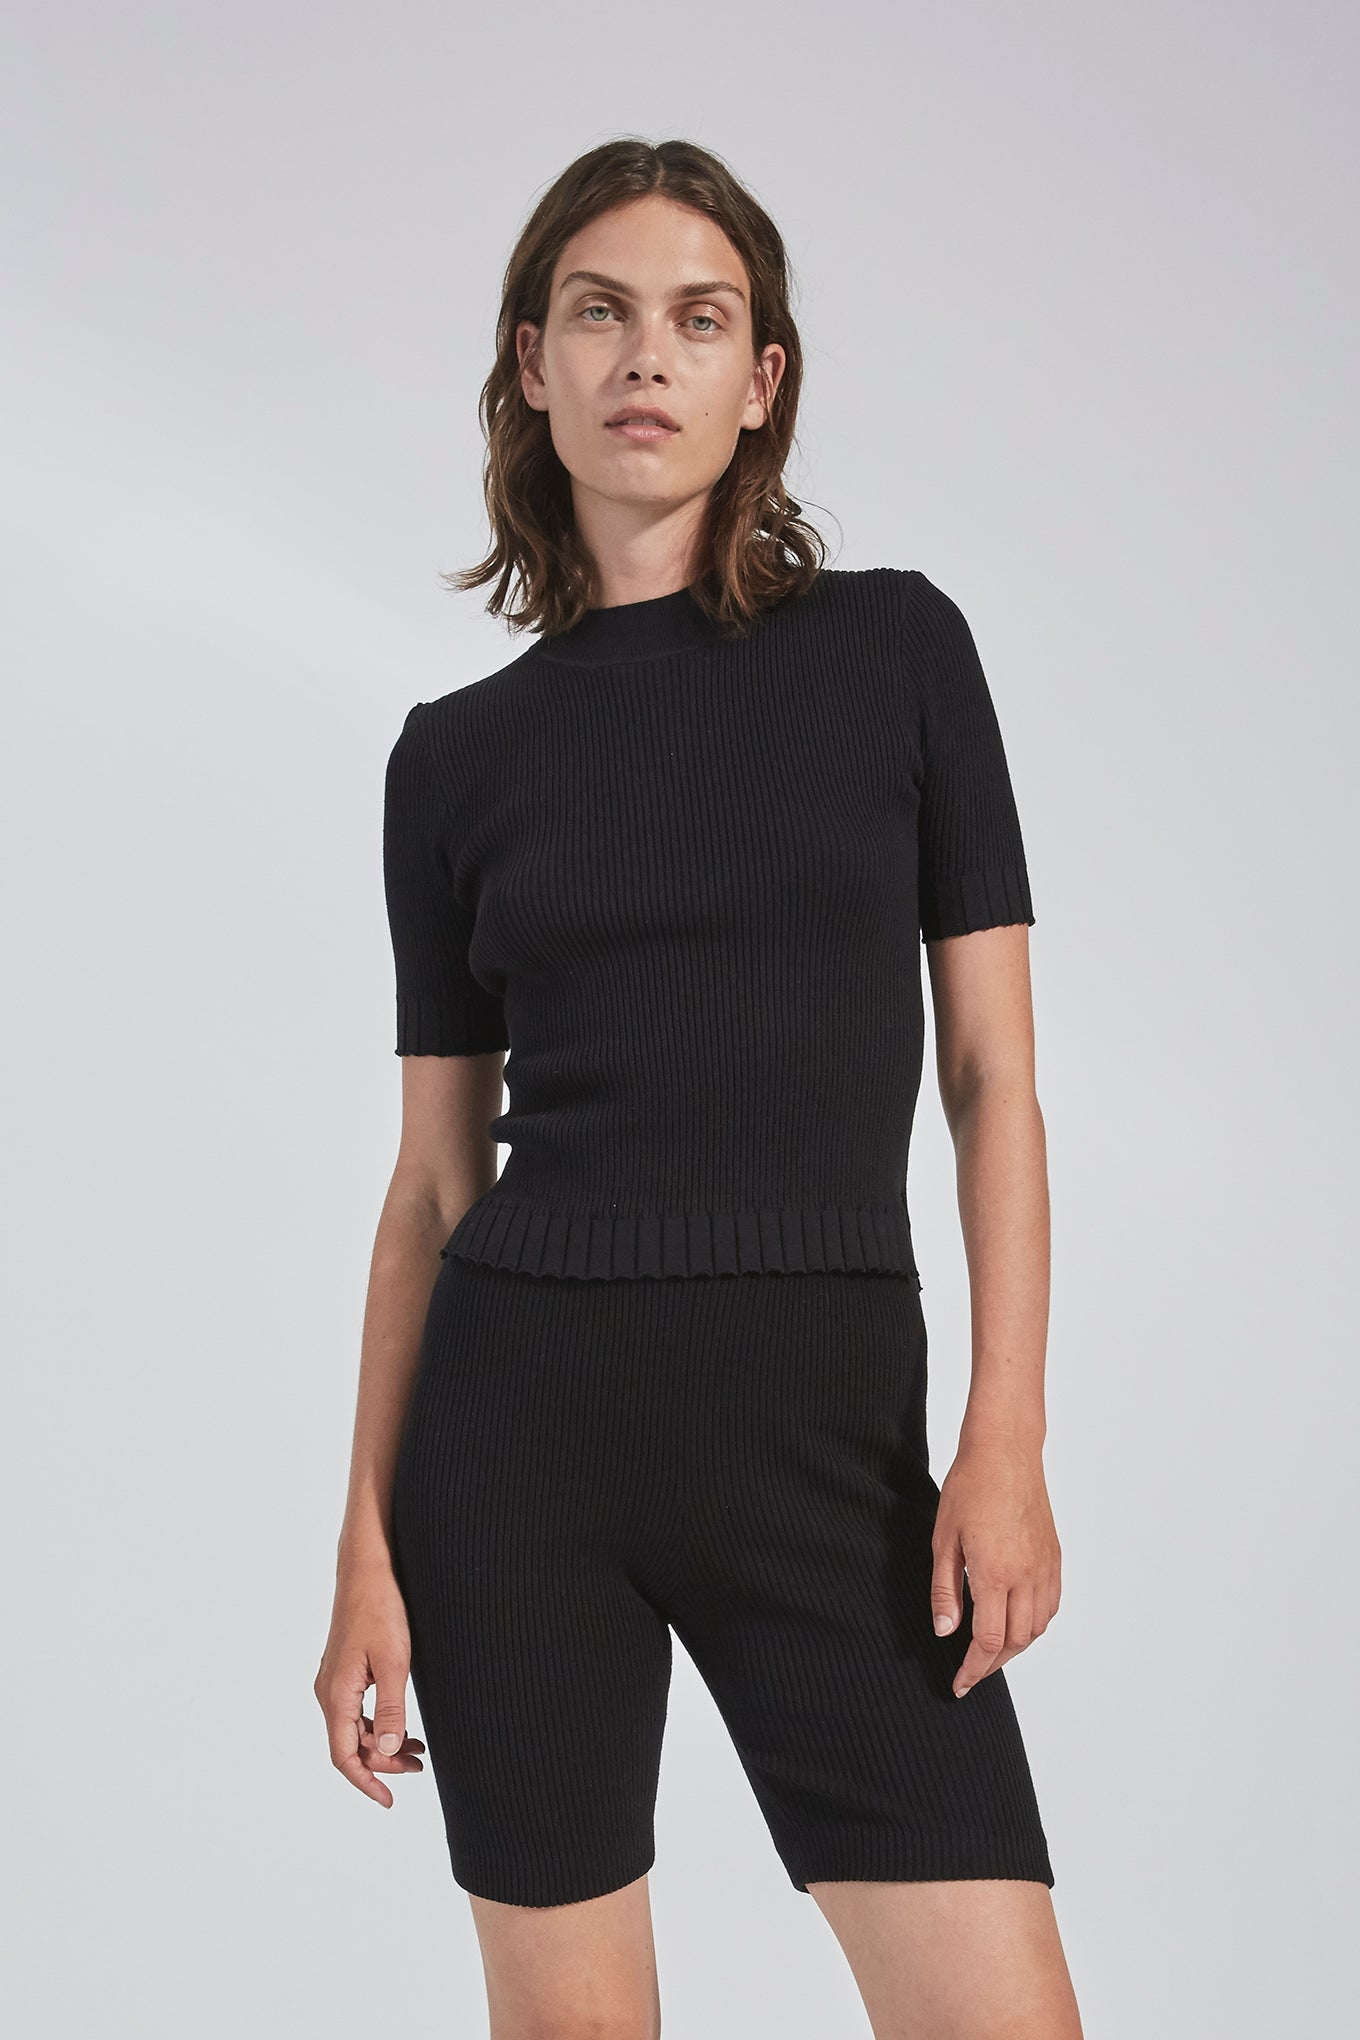 Billie SS Knit - Black - Silk/Cotton